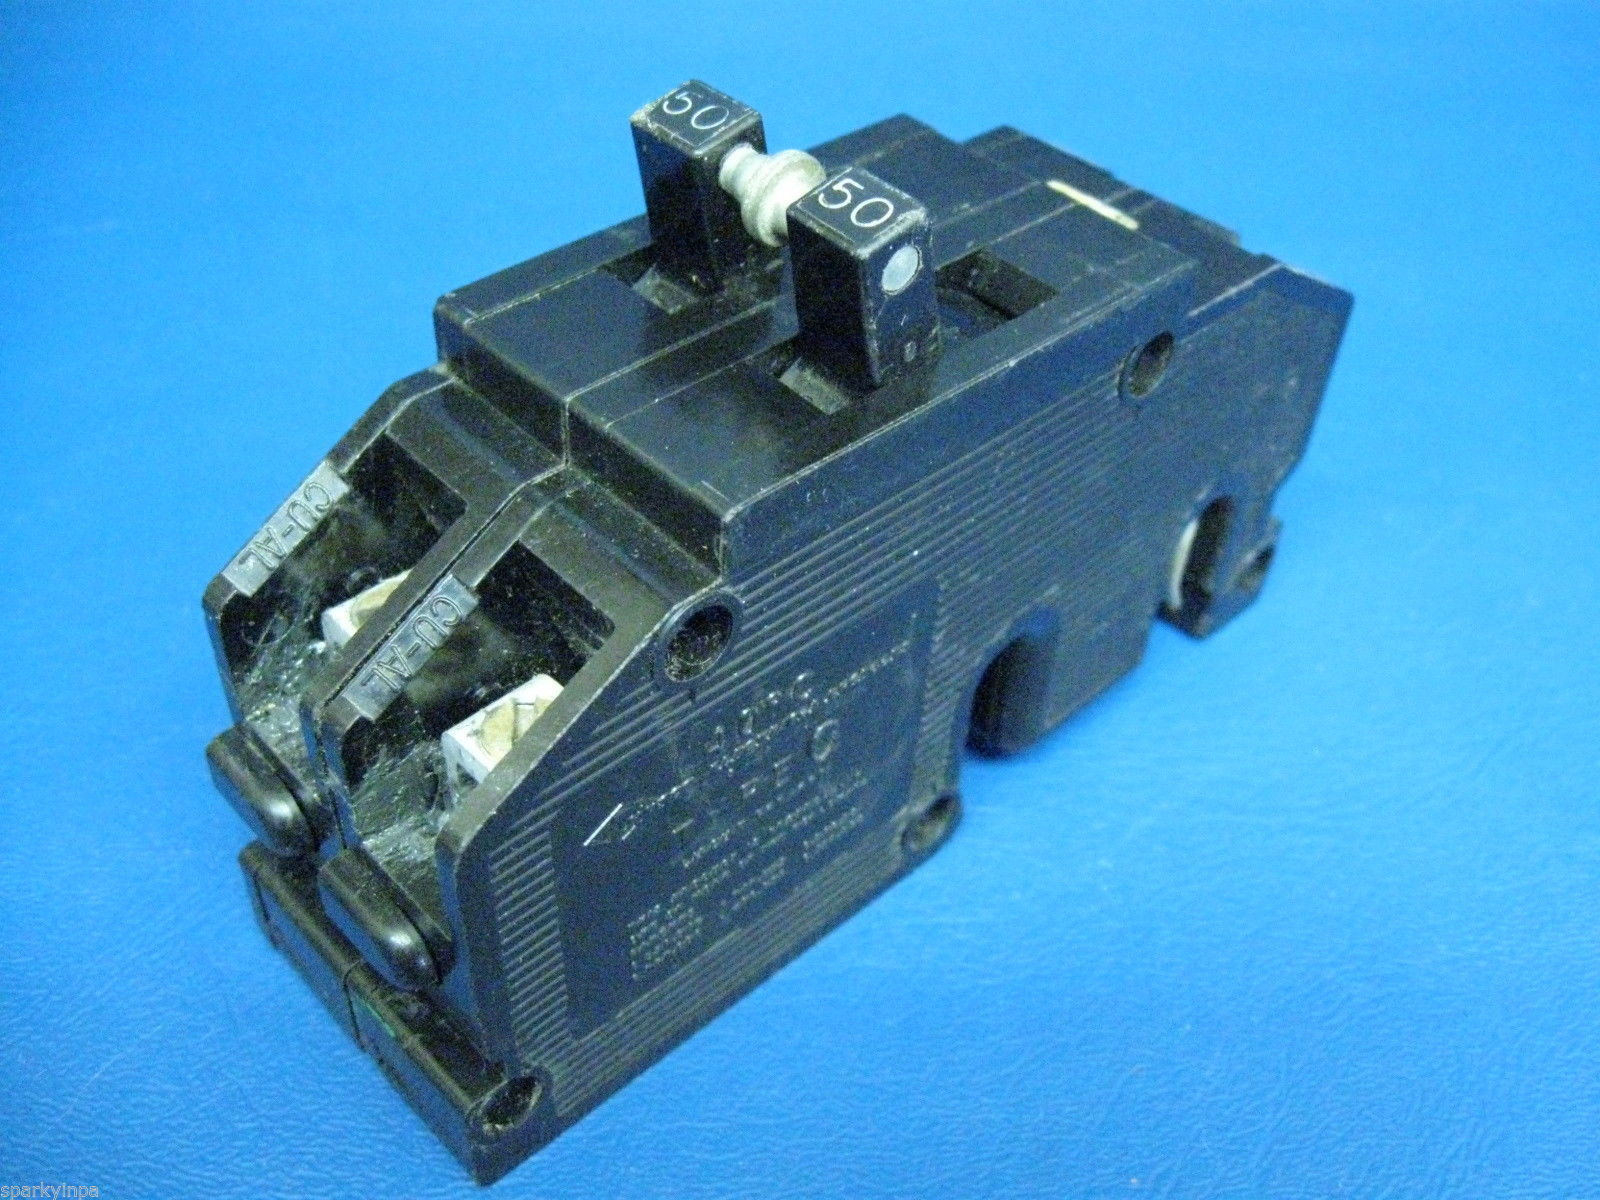 It With A Car Type Fuse Or A Circuit Breaker